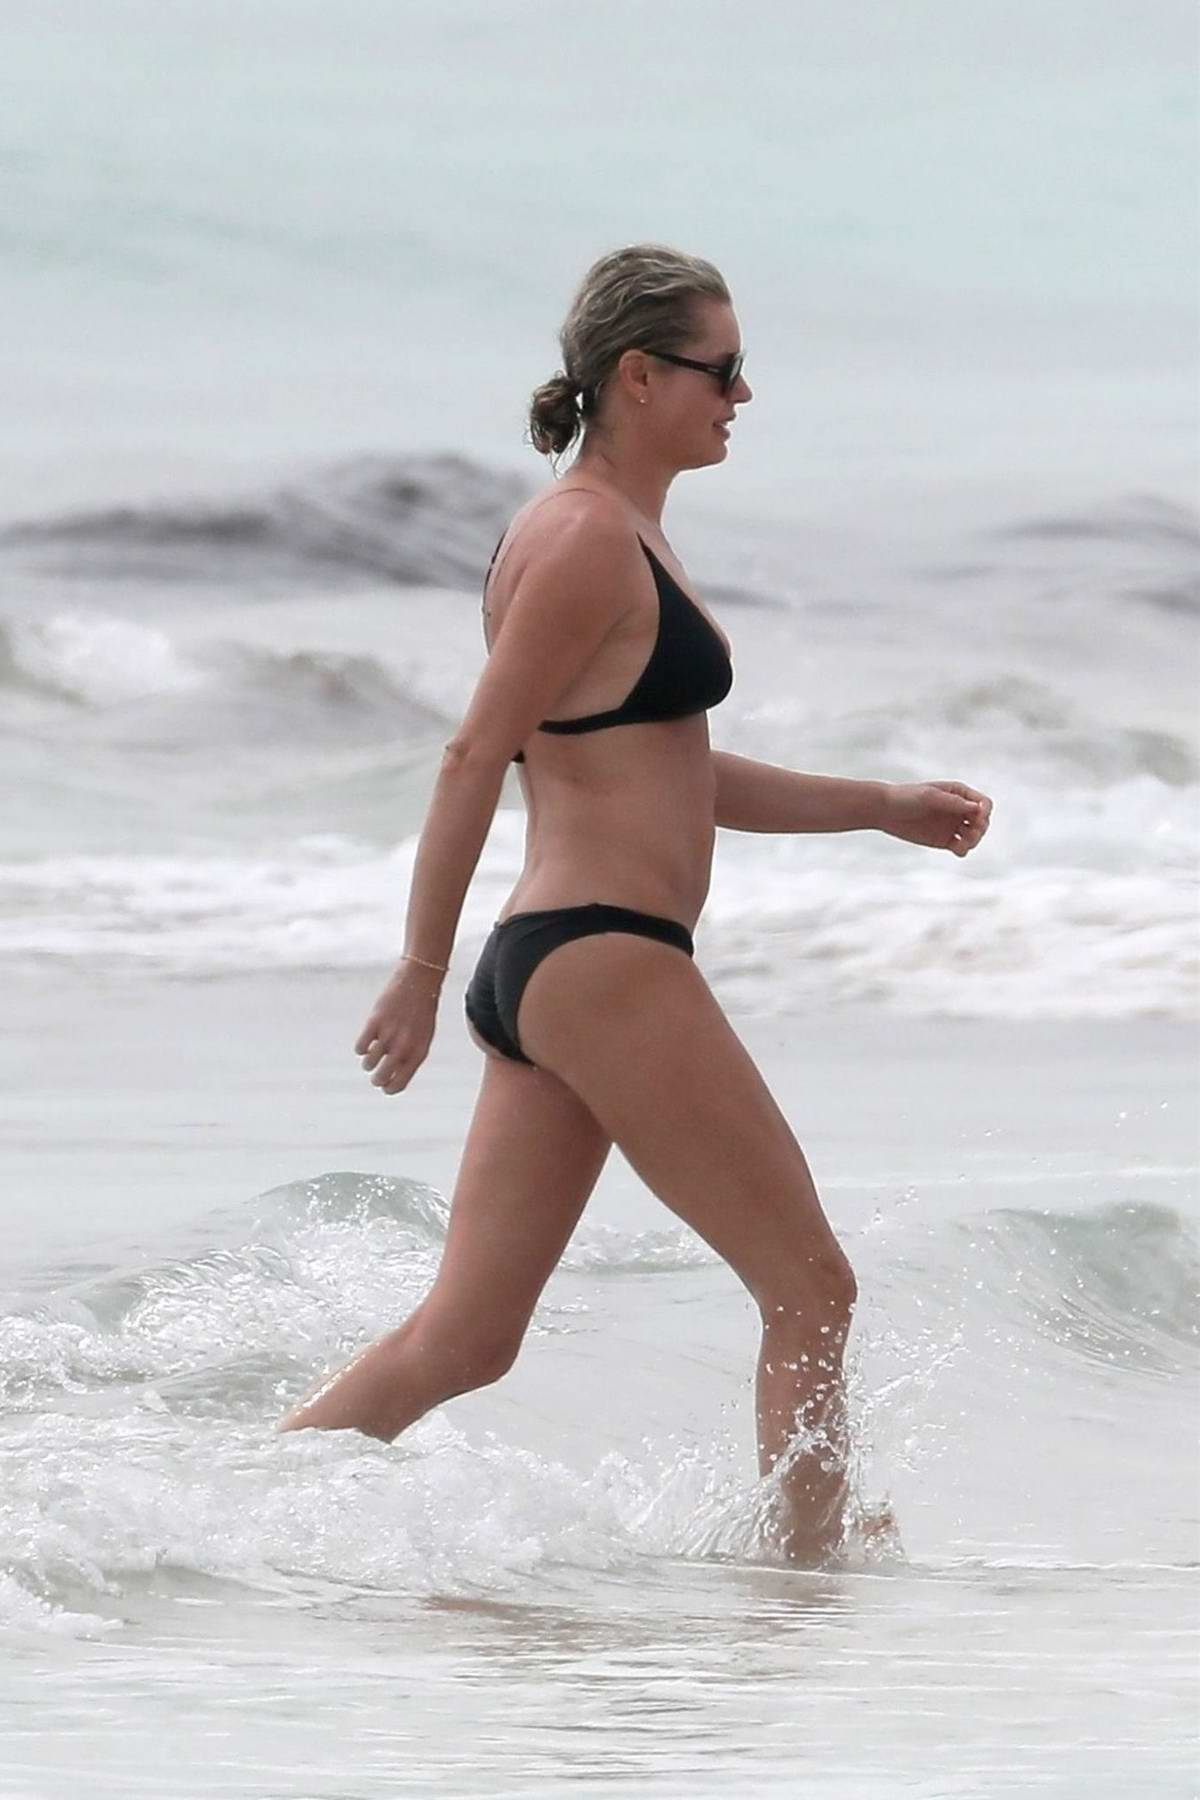 Rebecca Romijn enjoying New Year's Day on the beach in a black bikini in Tulum, Mexico